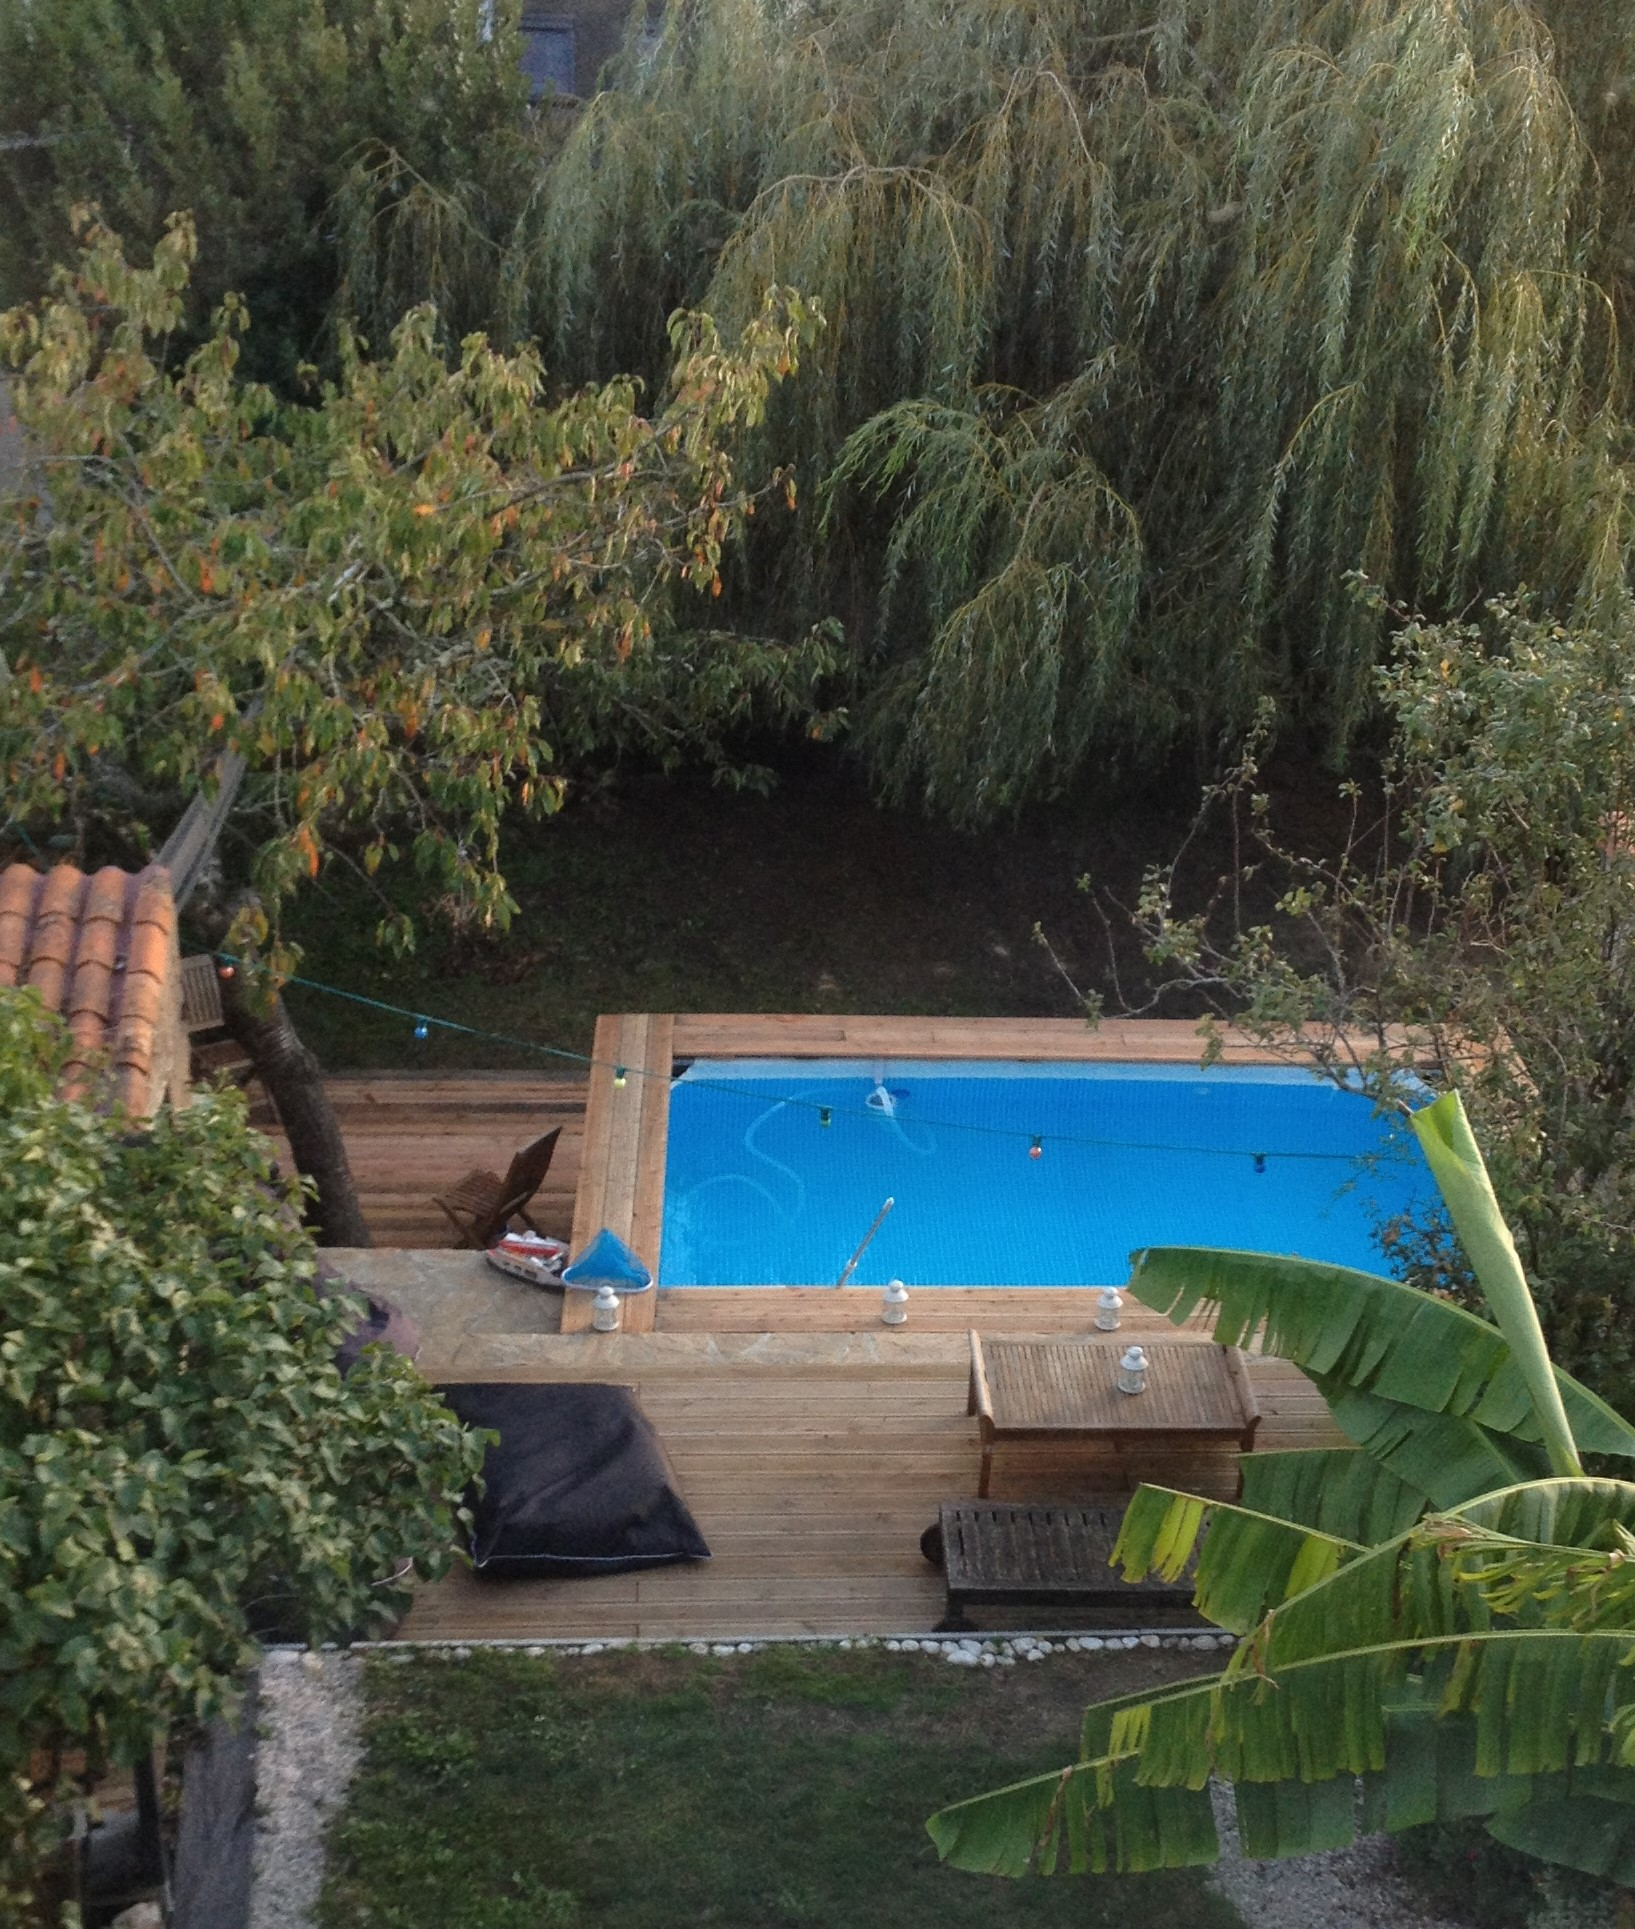 Comment encastrer sa piscine hors sol blog de raviday for Piscine hors sol